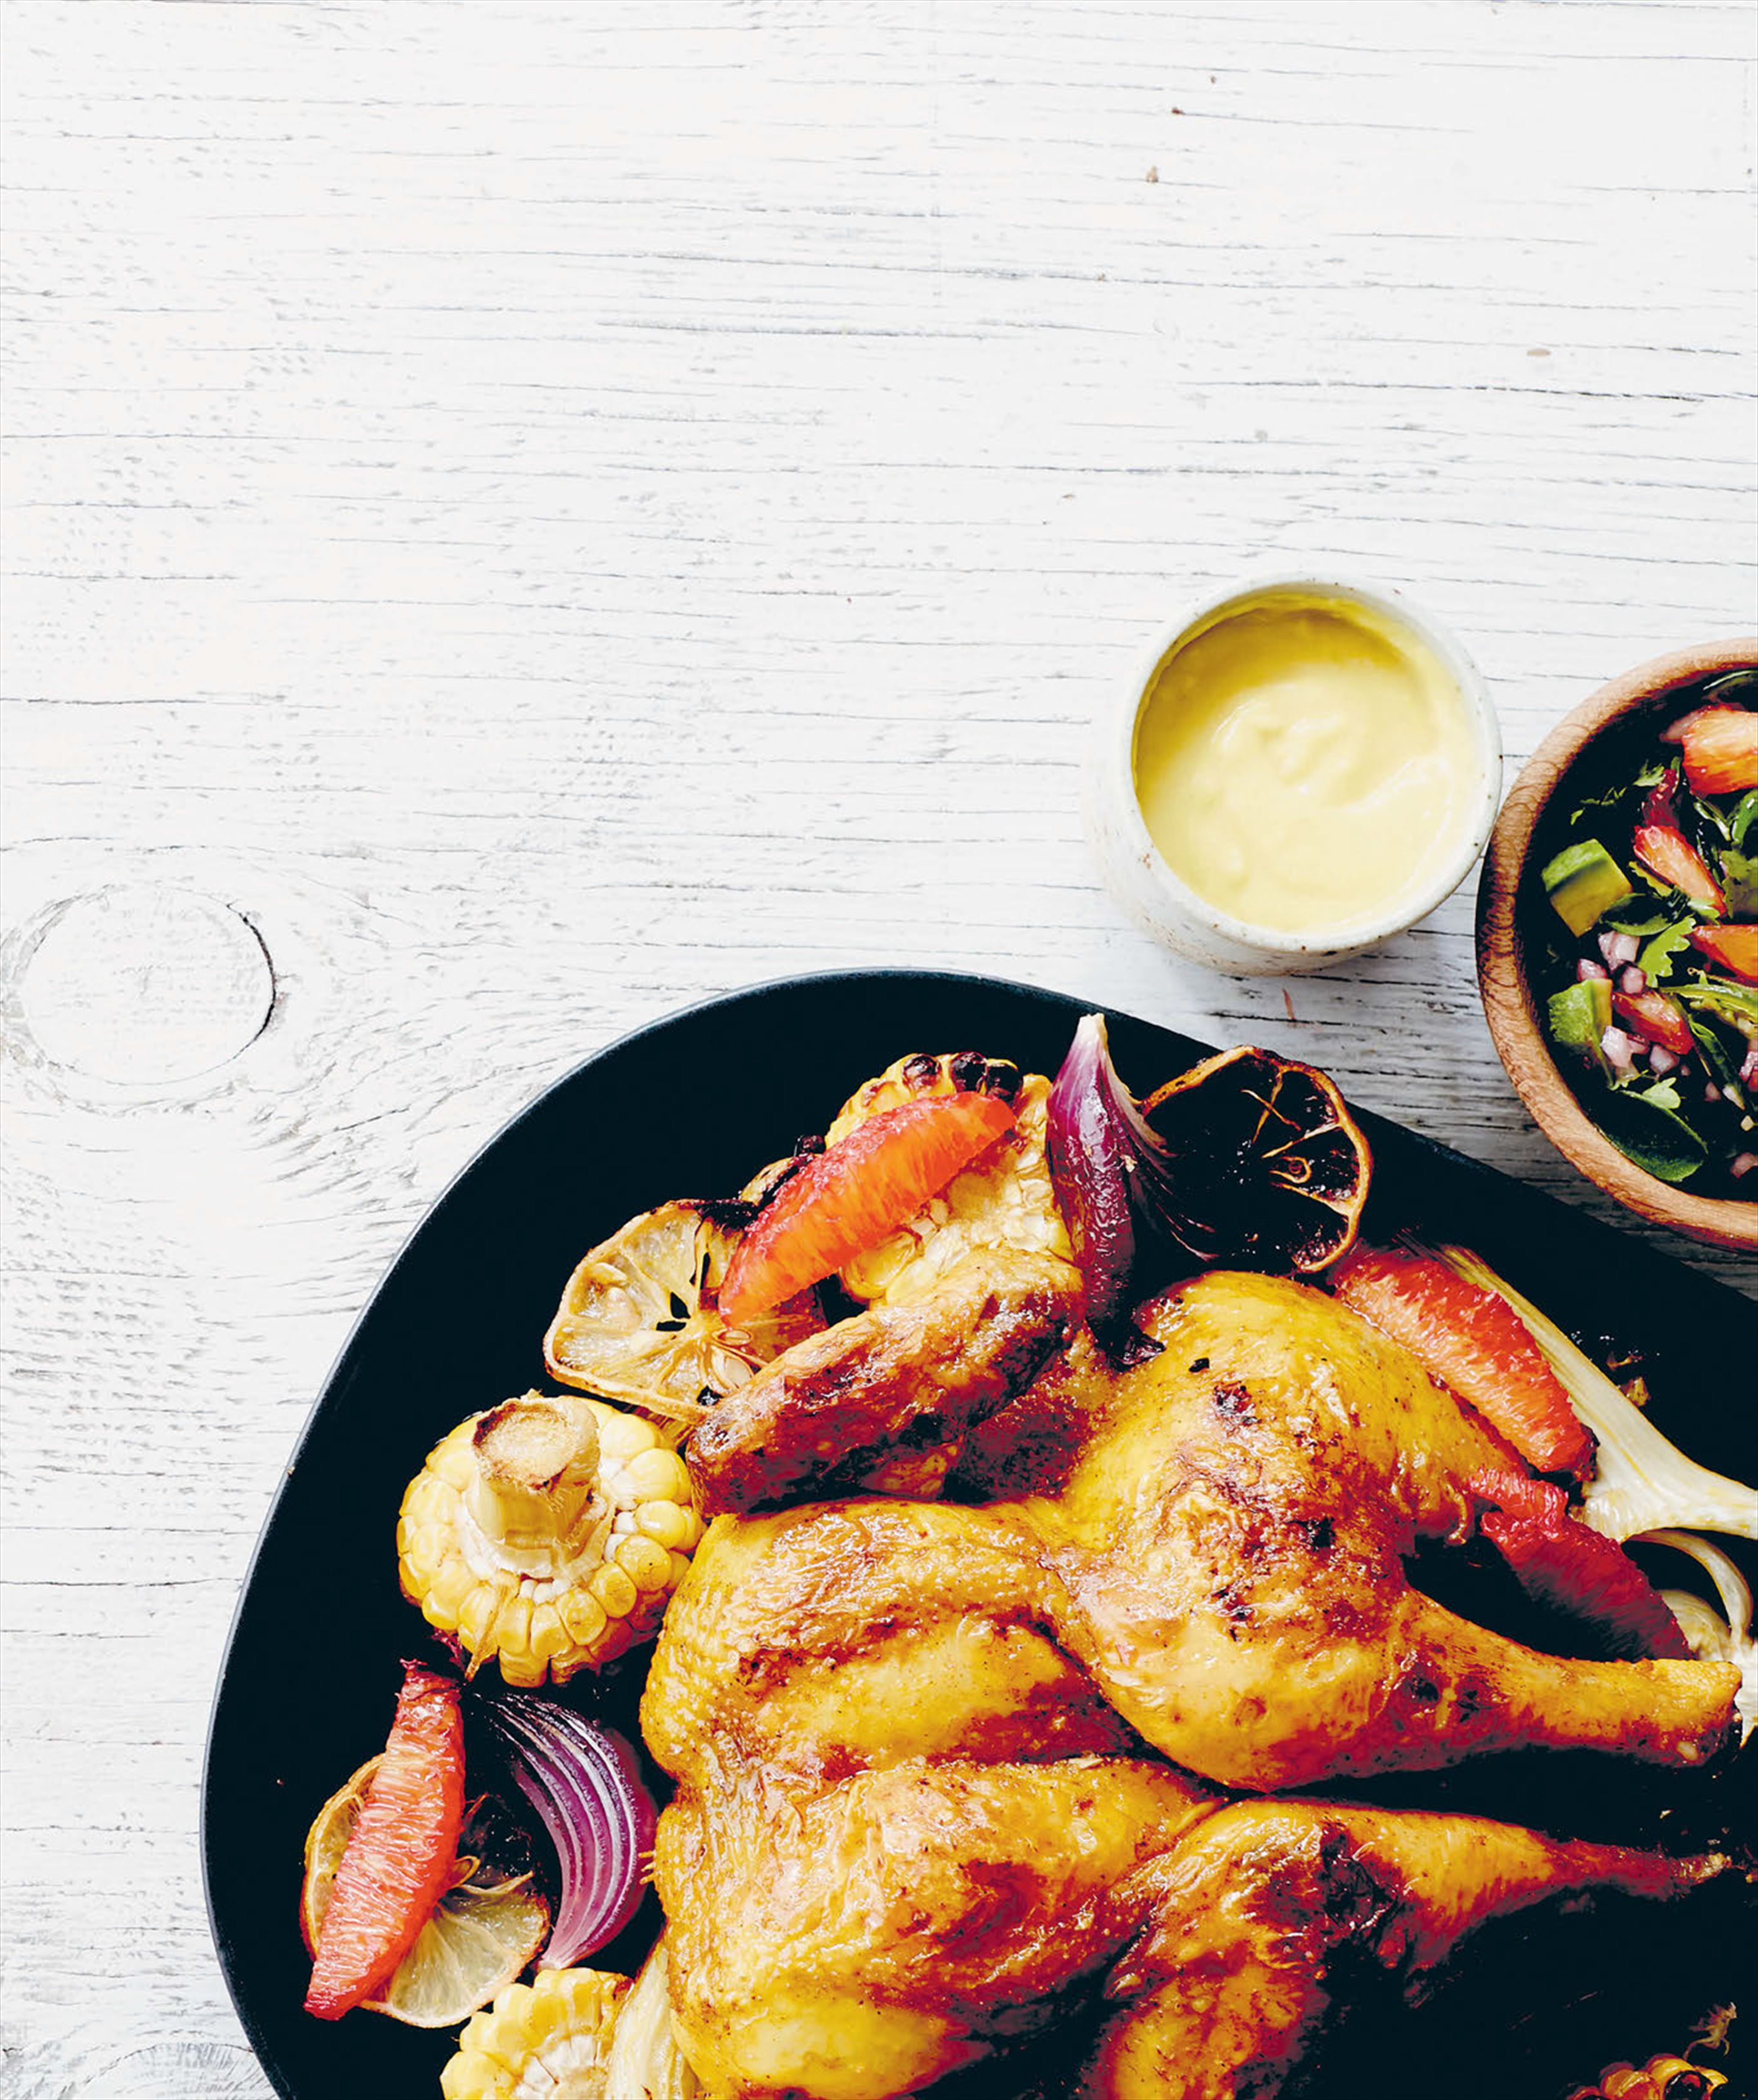 Roast chicken Mexico city-style with blood orange & avocado salsa